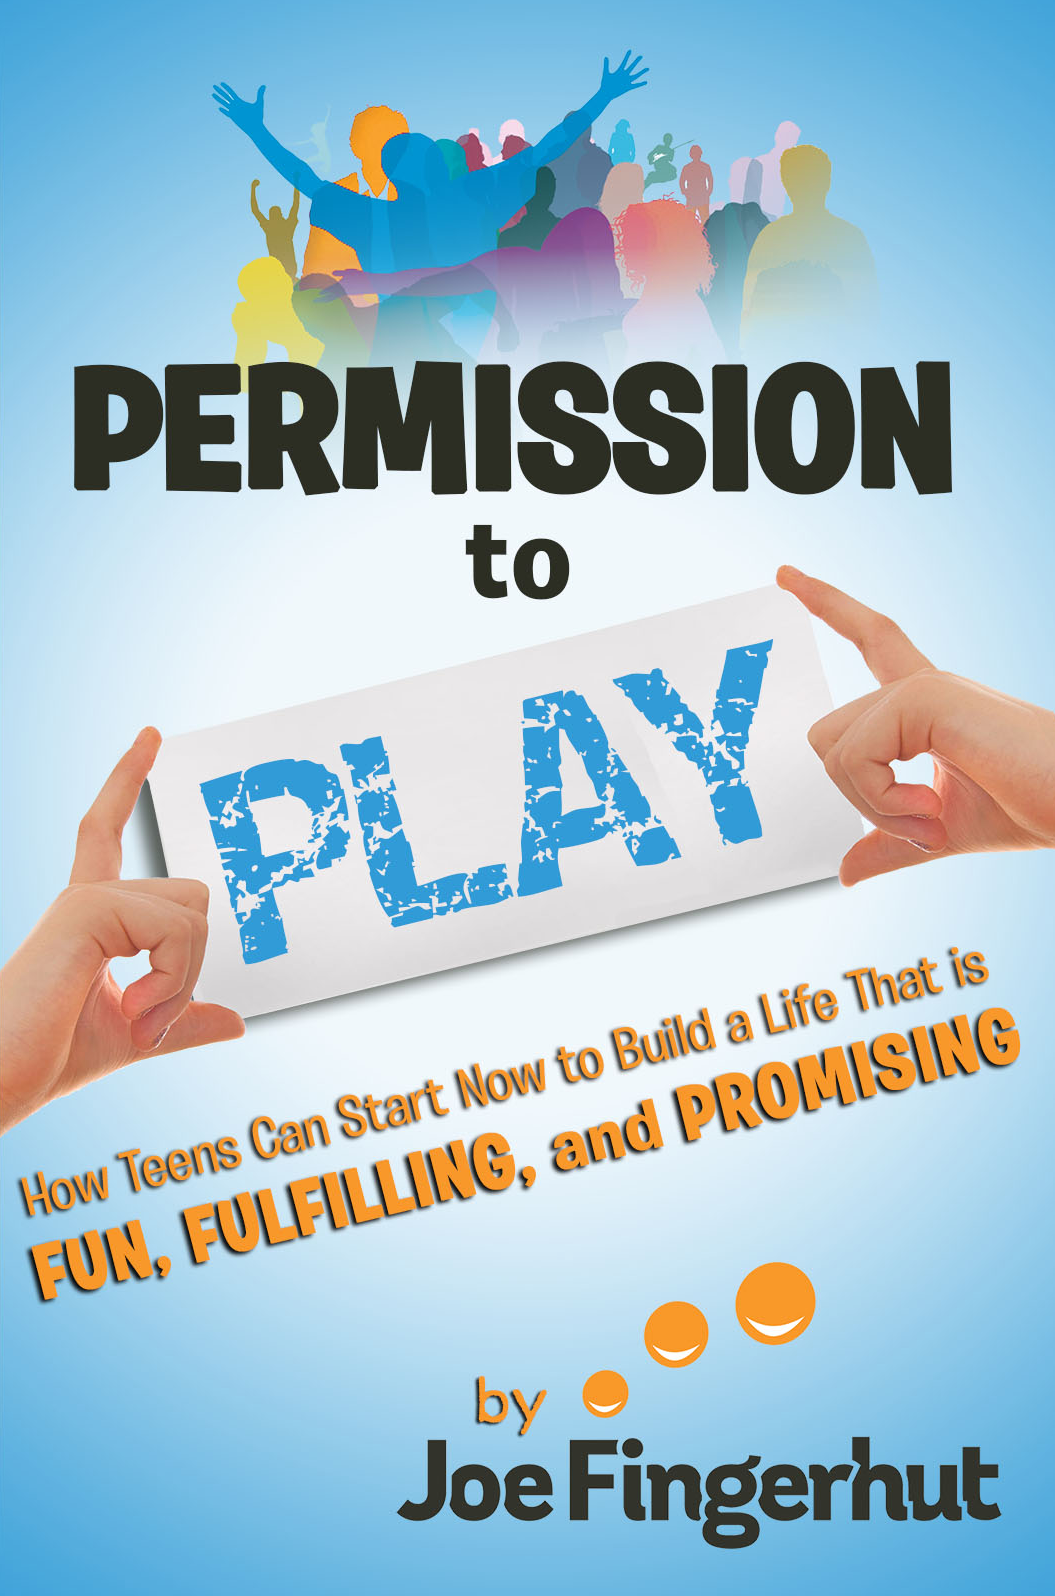 Permission to Play by Joe Fingerhut front cover